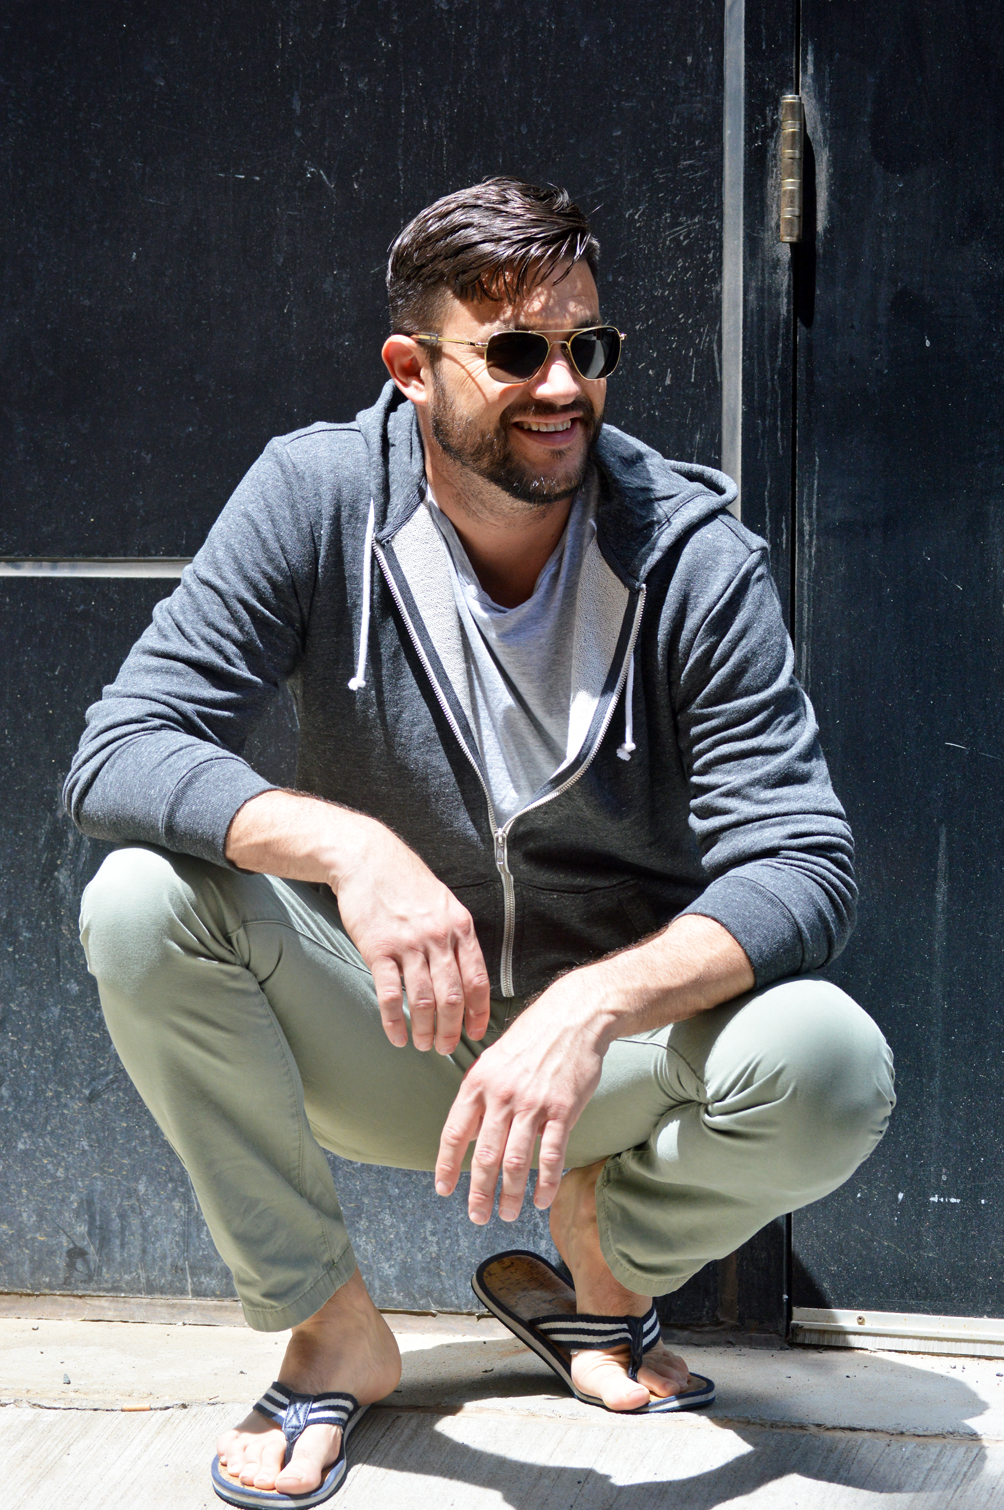 men's fashion summer to fall outfit inspiration